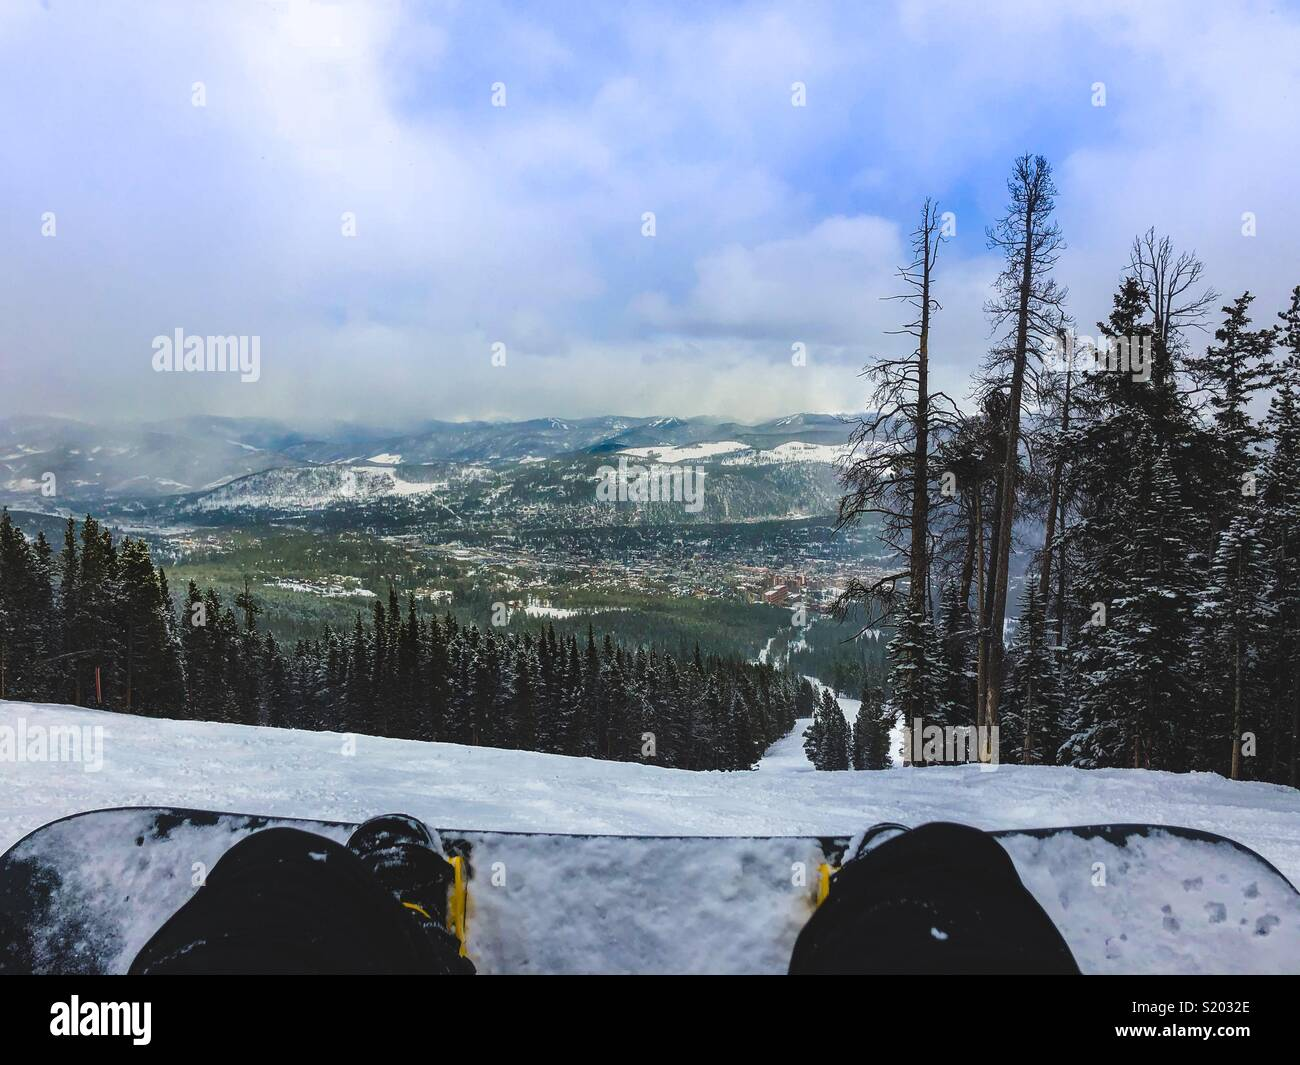 Snowboard View - Stock Image